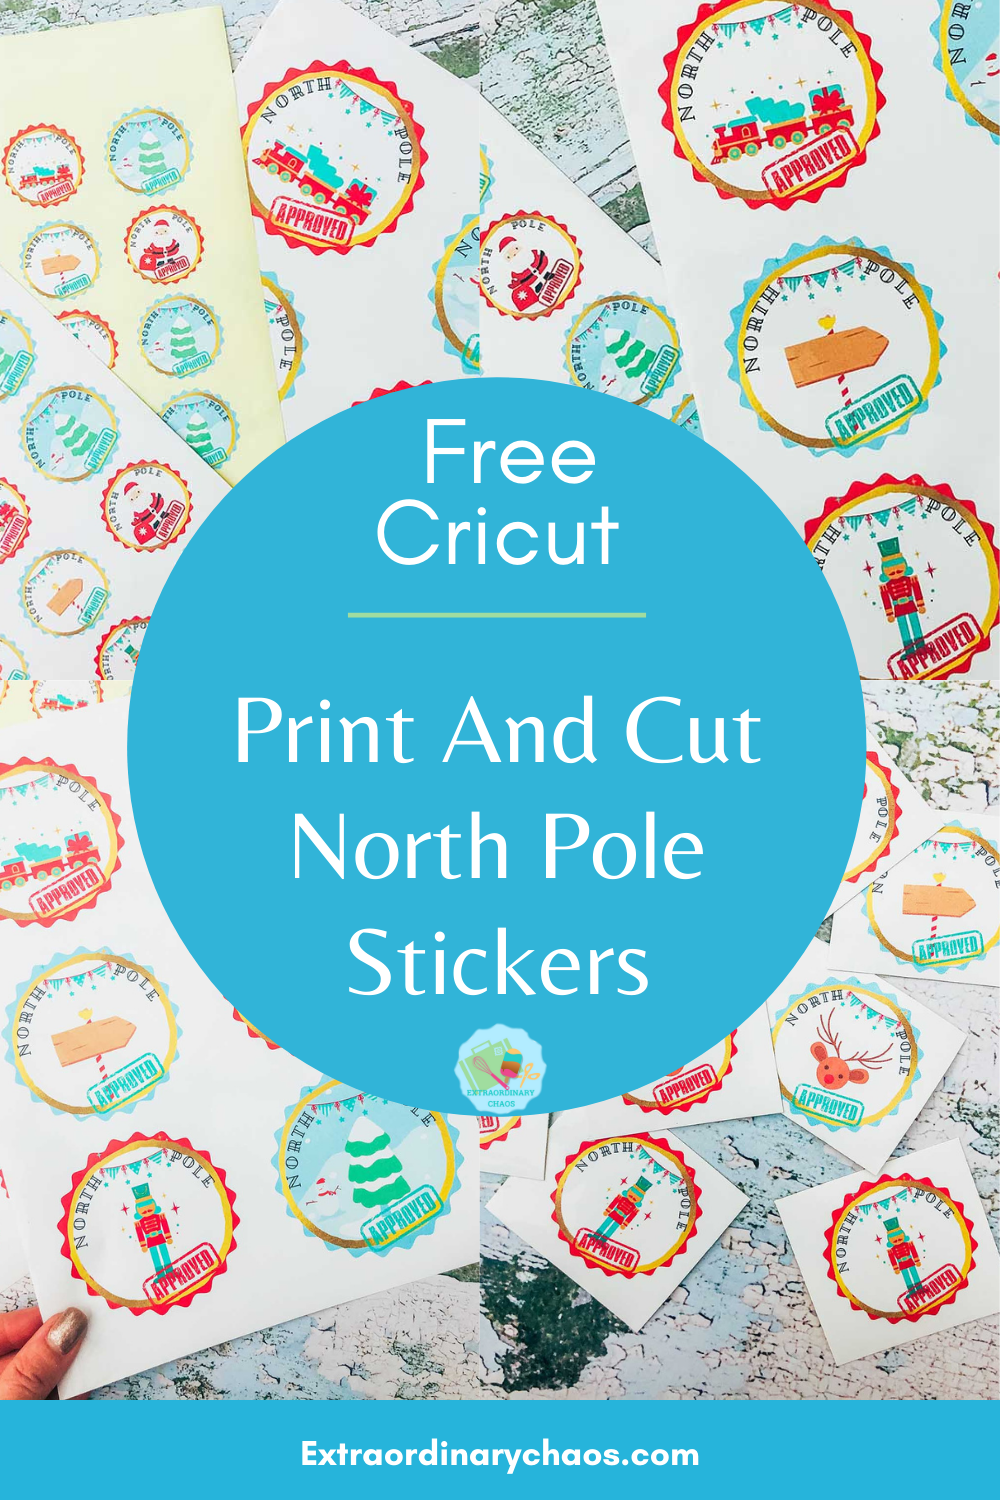 Free Cricut Print and cut North Pole Stickers